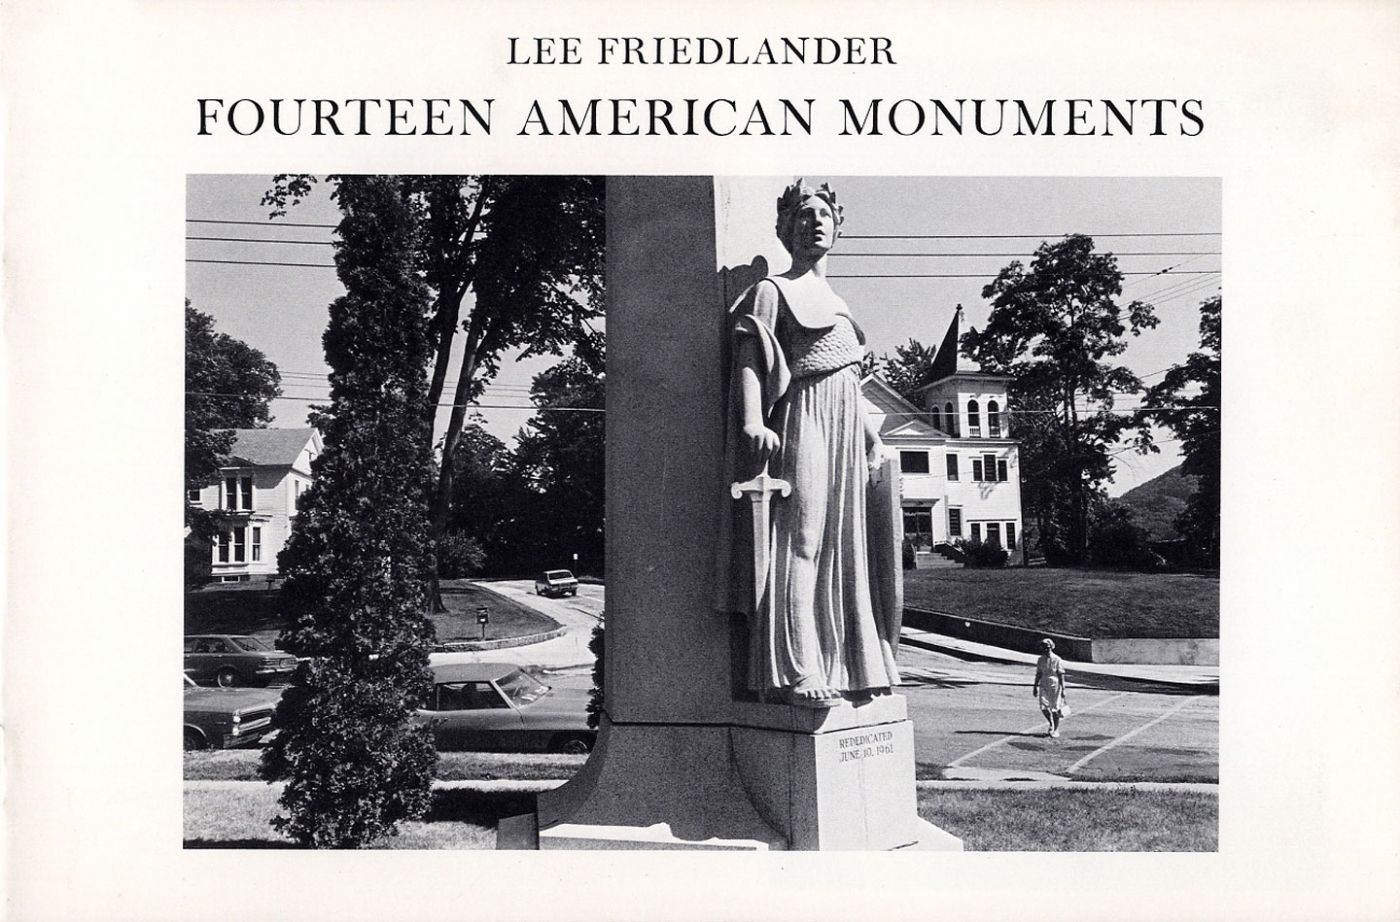 Lee Friedlander: Fourteen American Monuments